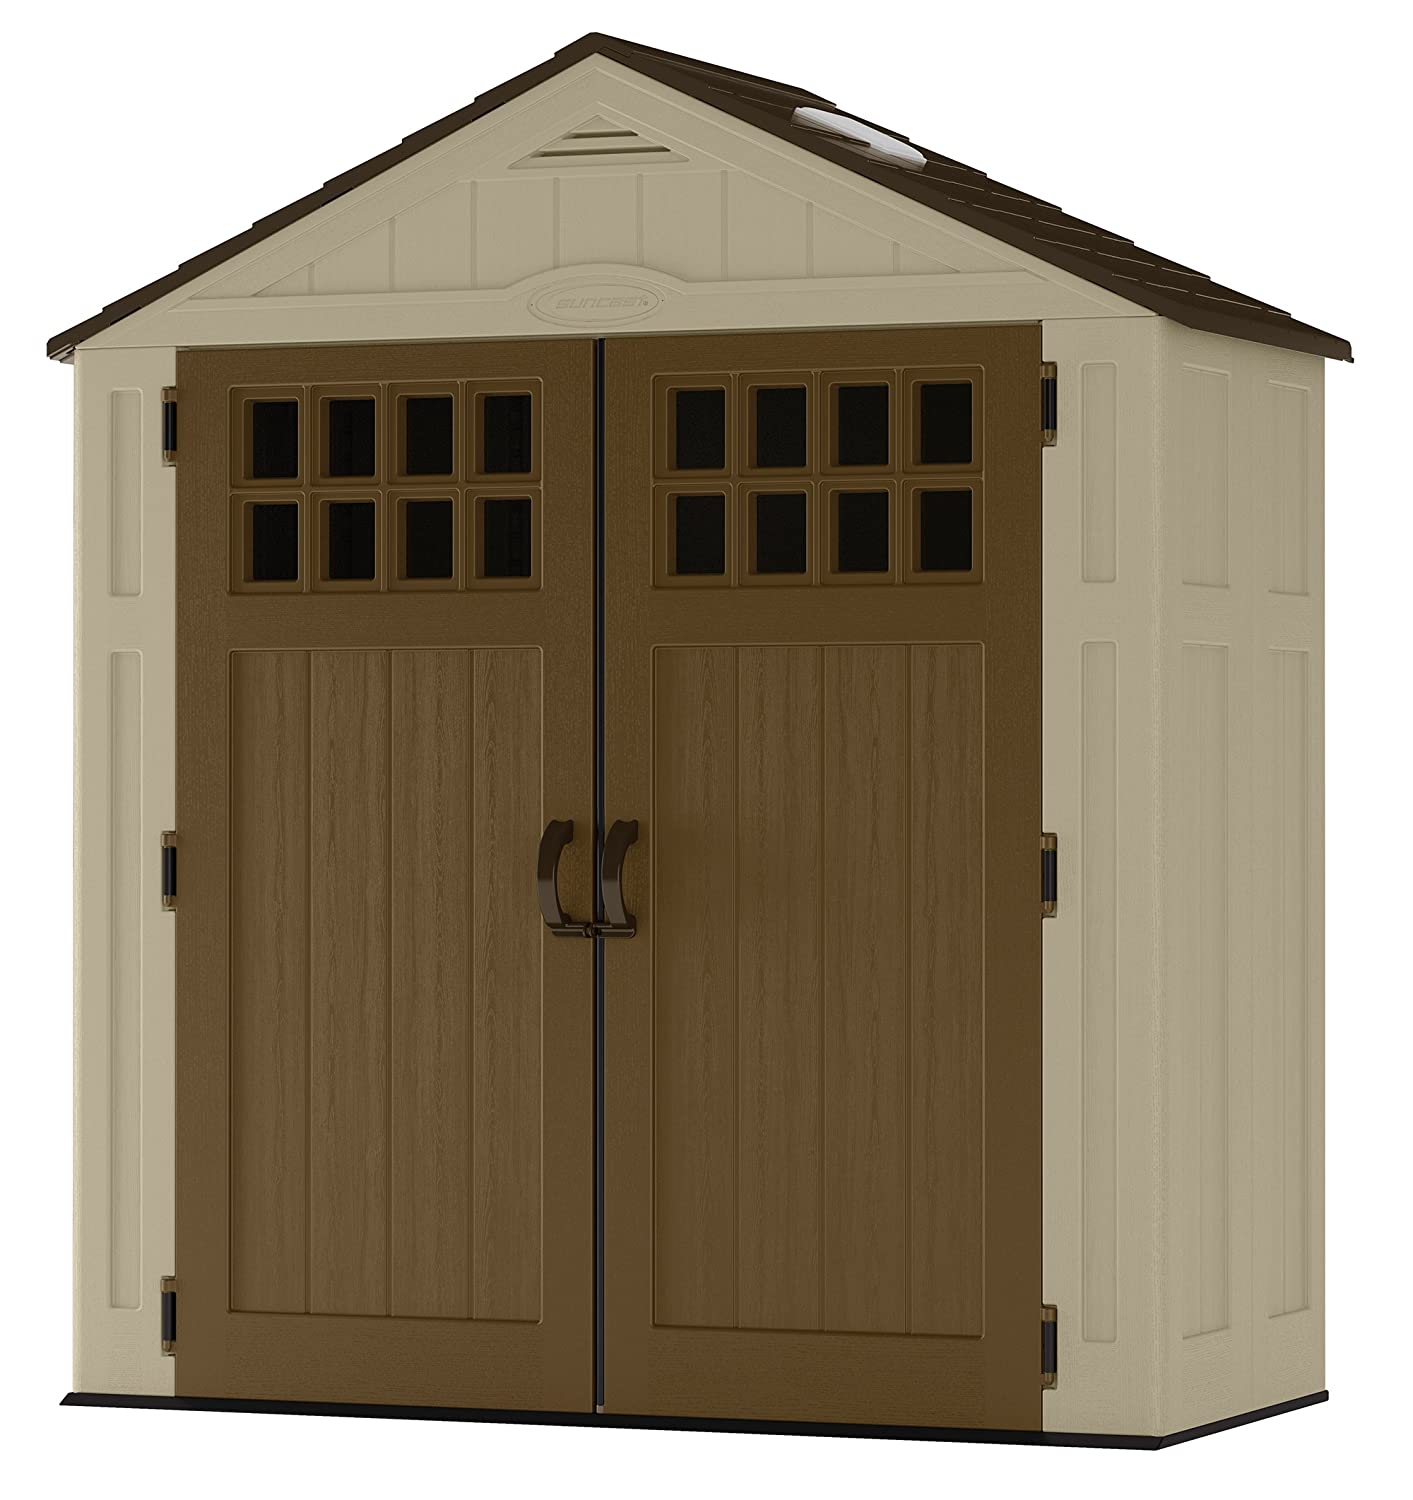 Amazon Suncast BMS6310D 6 Feet by 3 Feet Shed Storage Sheds